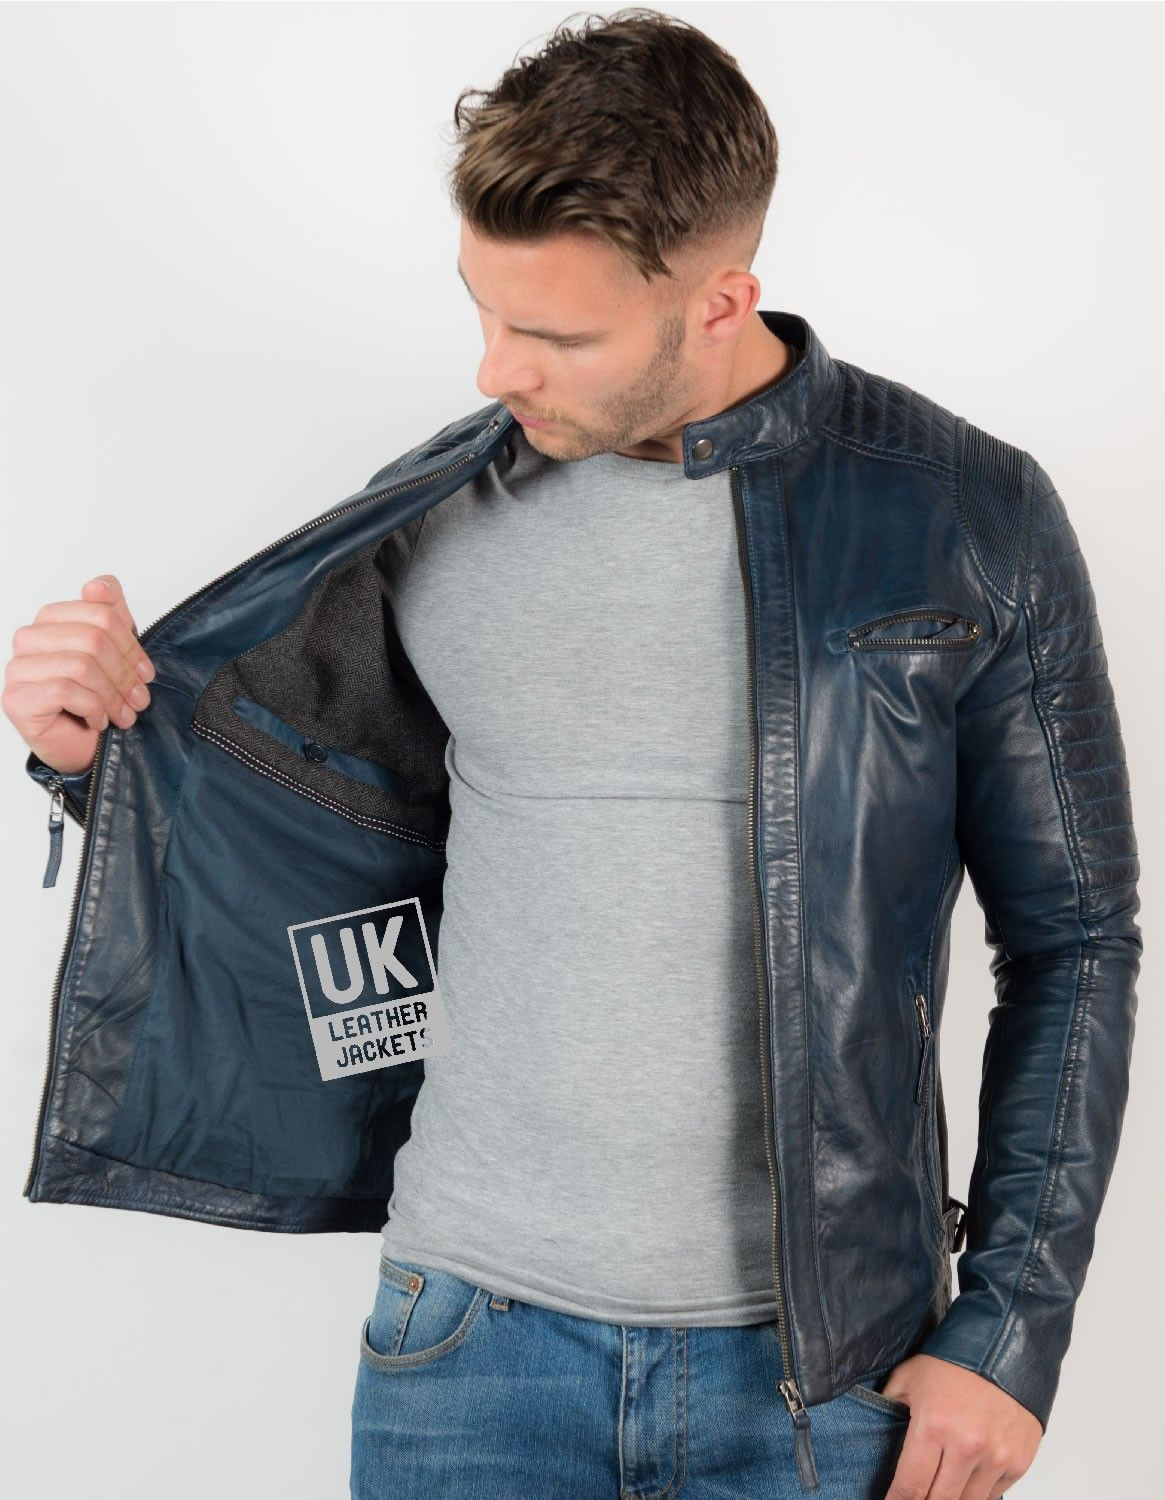 Mens Navy Leather Biker Jacket | UK LJ in 2019 | Black ...